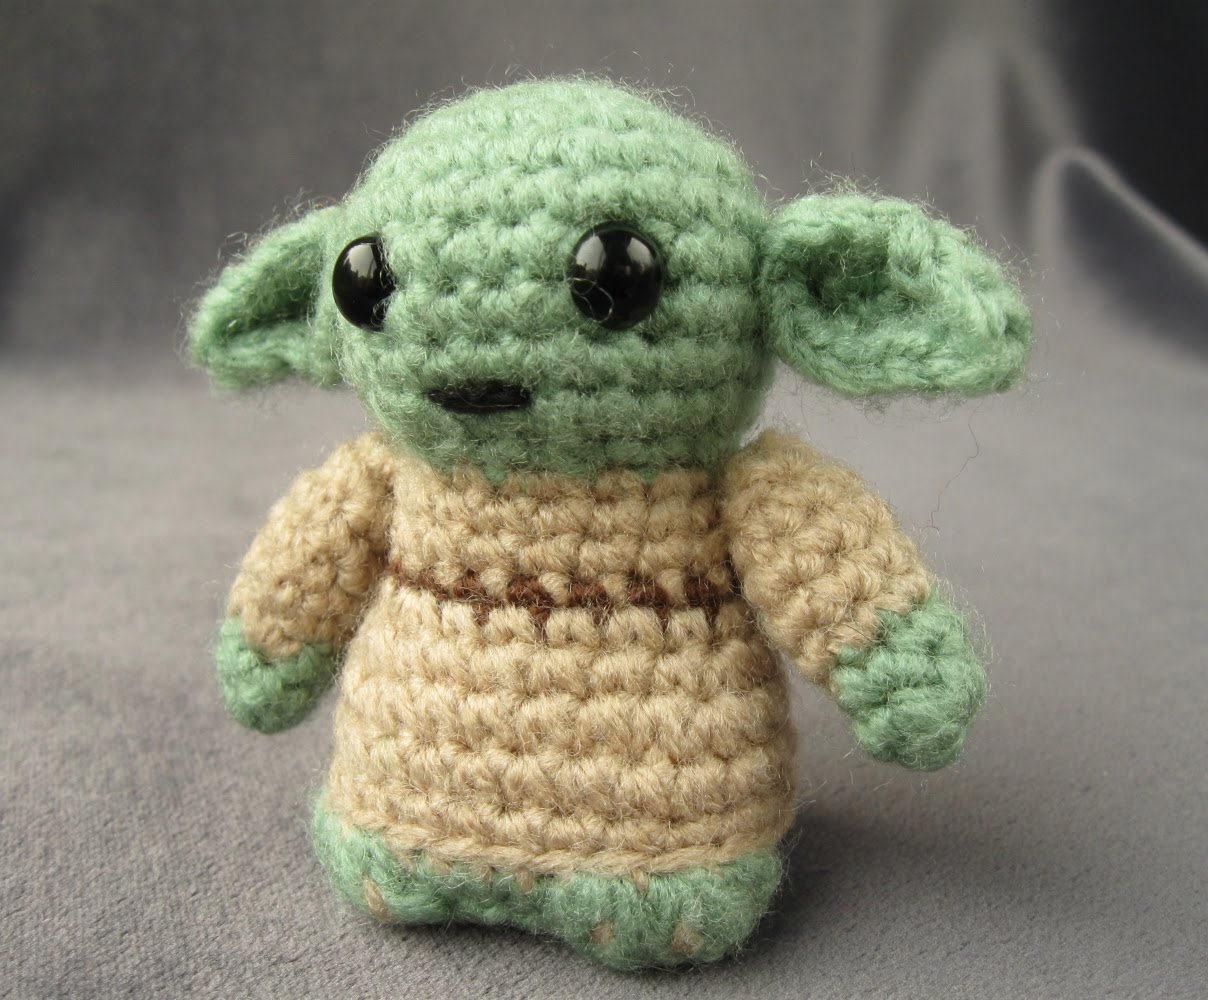 Crochet Patterns Star Wars : Starwars Mini Amigurumi Patterns (11) 2